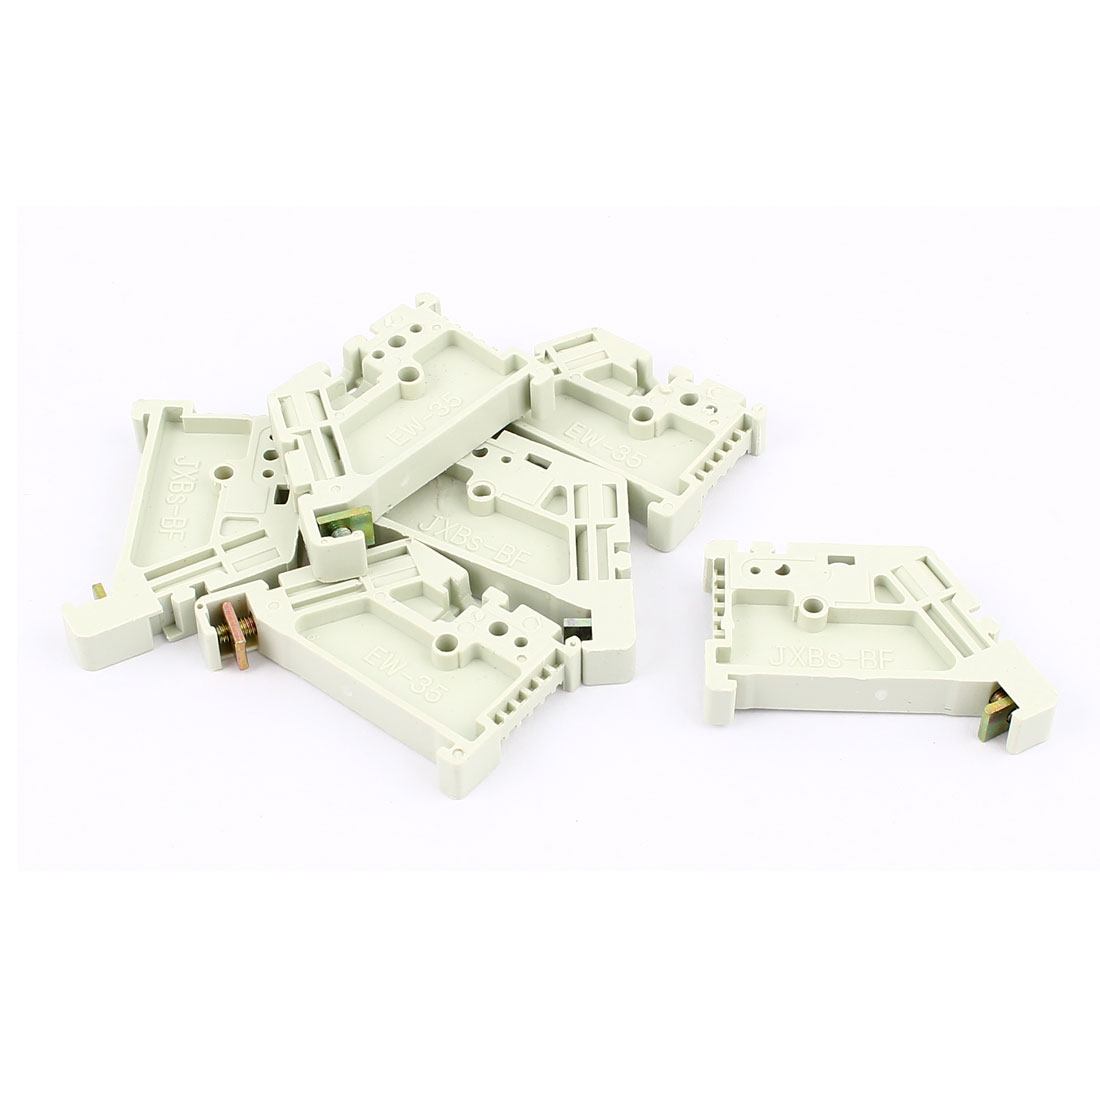 6 Pcs Plastic 35mm DIN Rail Screw Fixed Terminal Block End Stopper Mounting Clips Clamps Connector